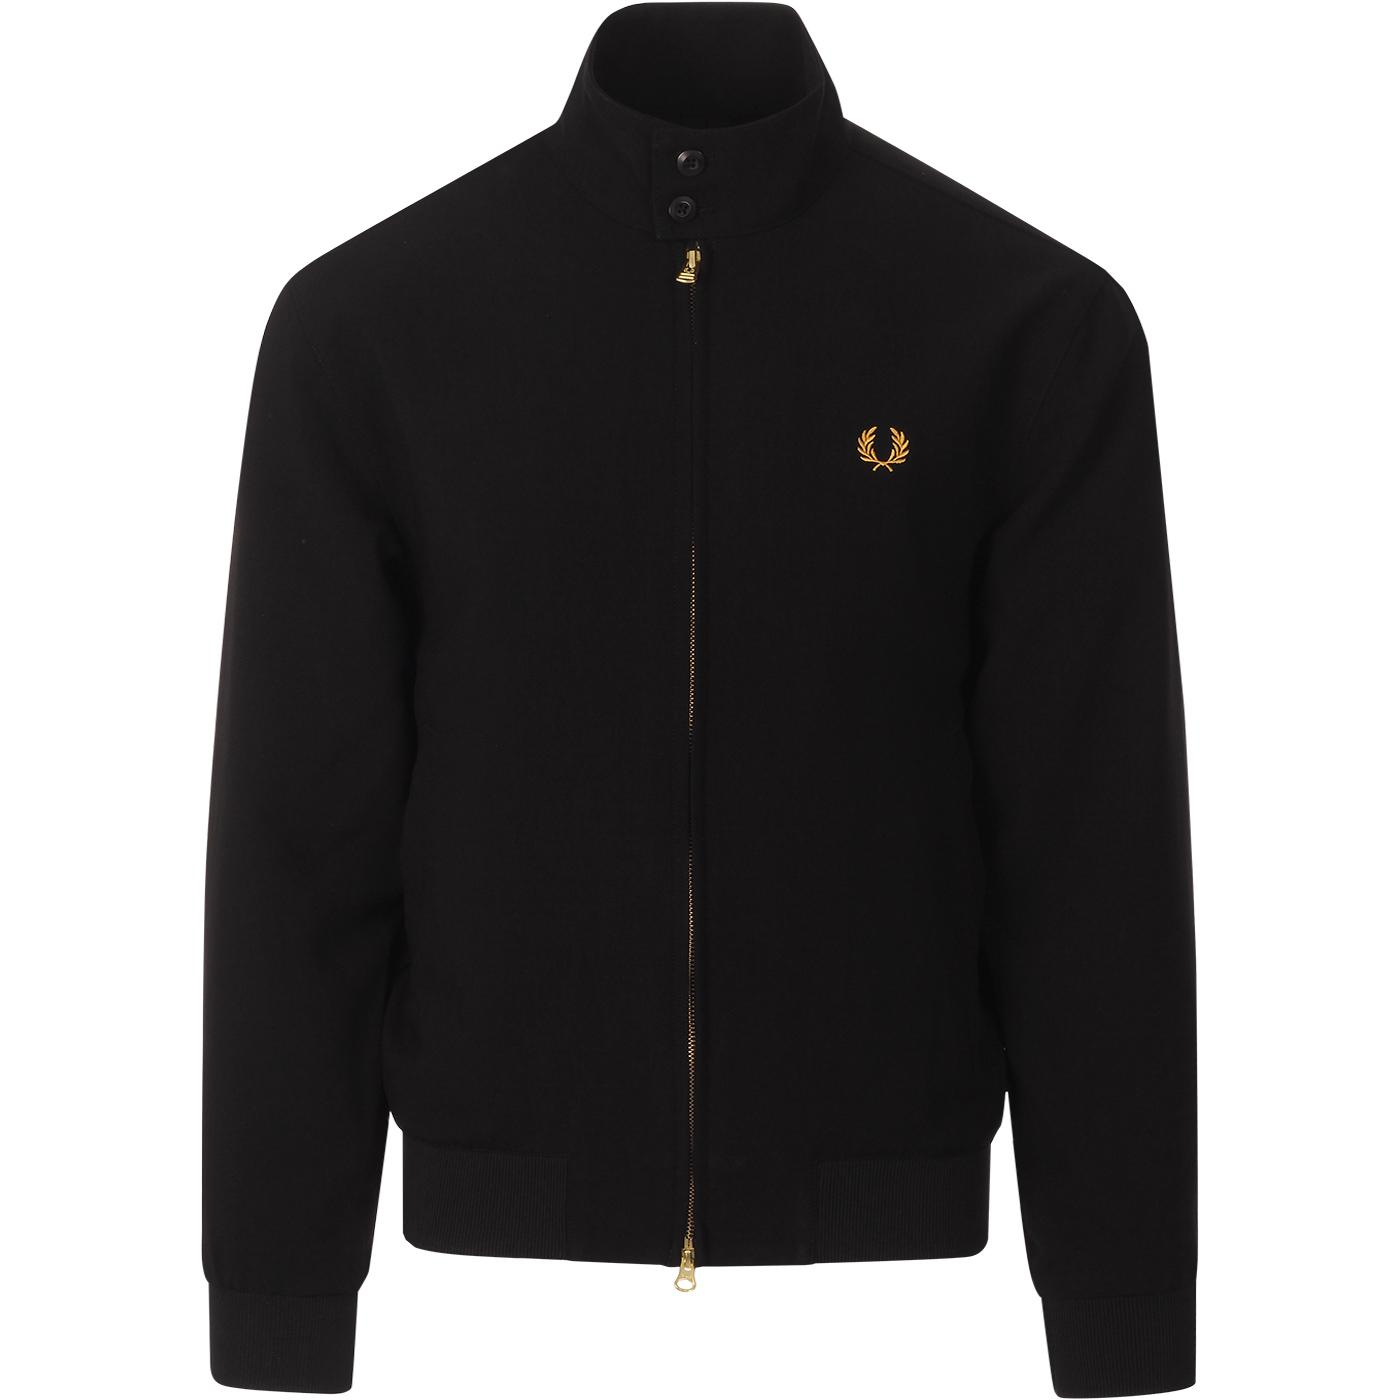 Sharp FRED PERRY Lightweight Harrington Jacket (B)